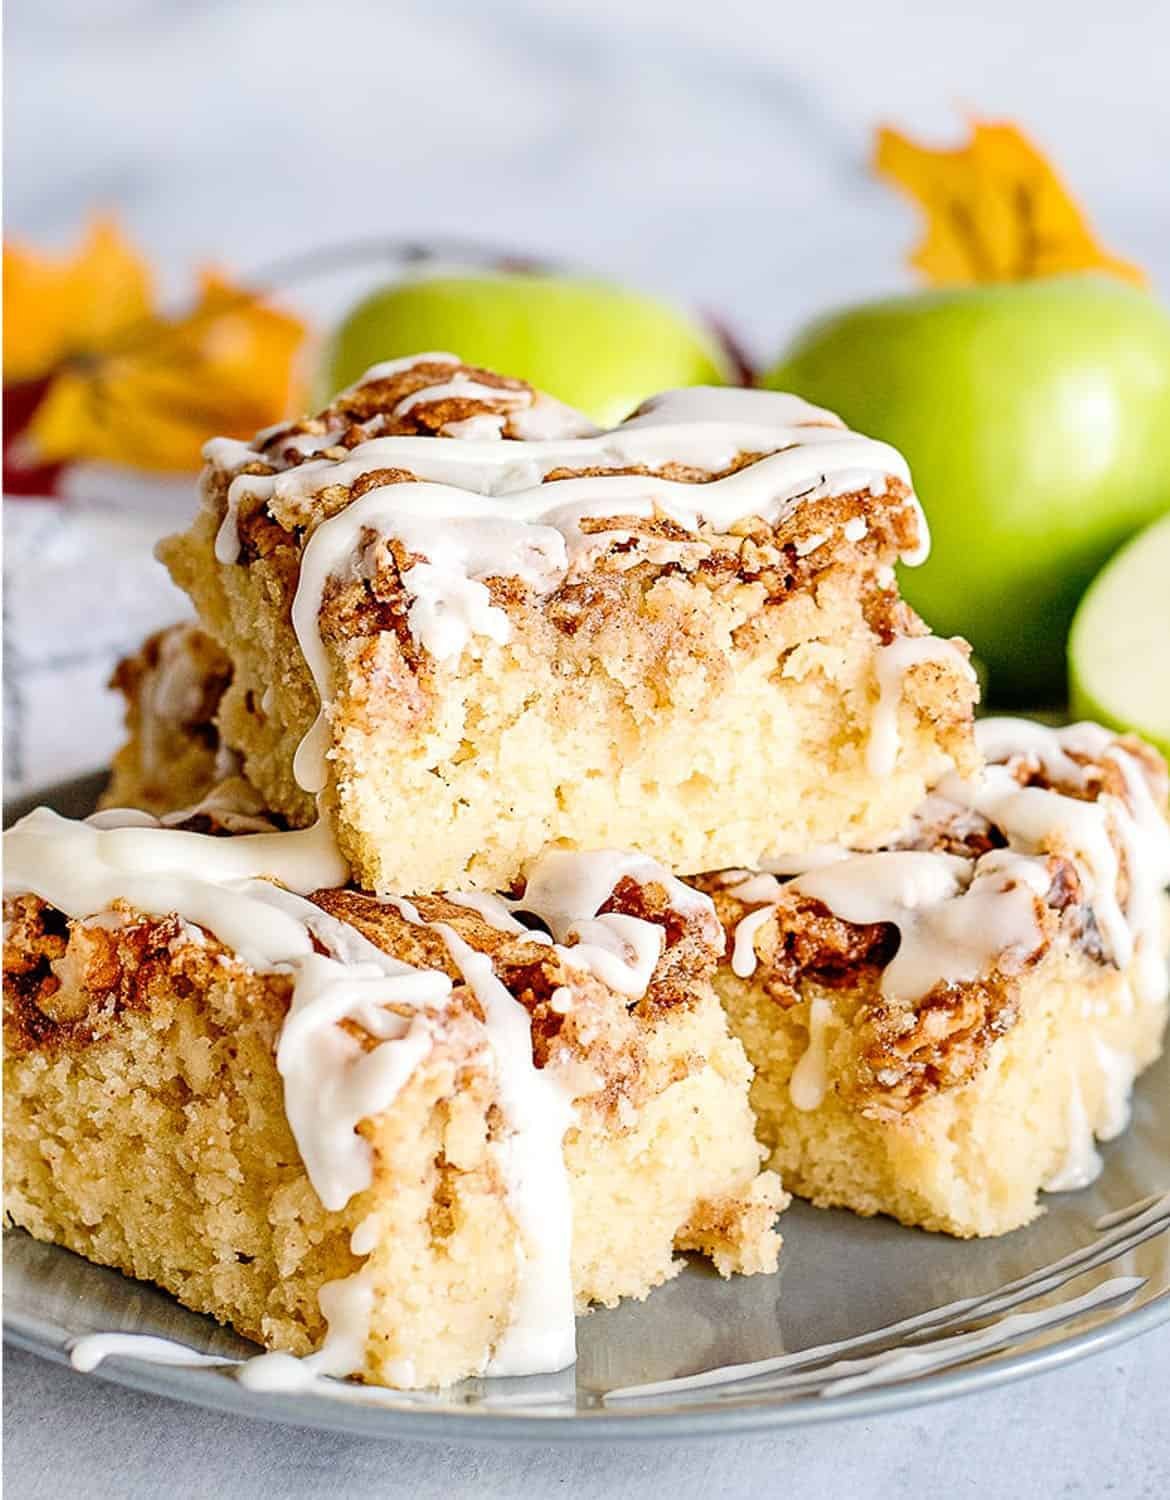 Apple fritter breakfast cake with green apples in the background - Courtney's Sweets